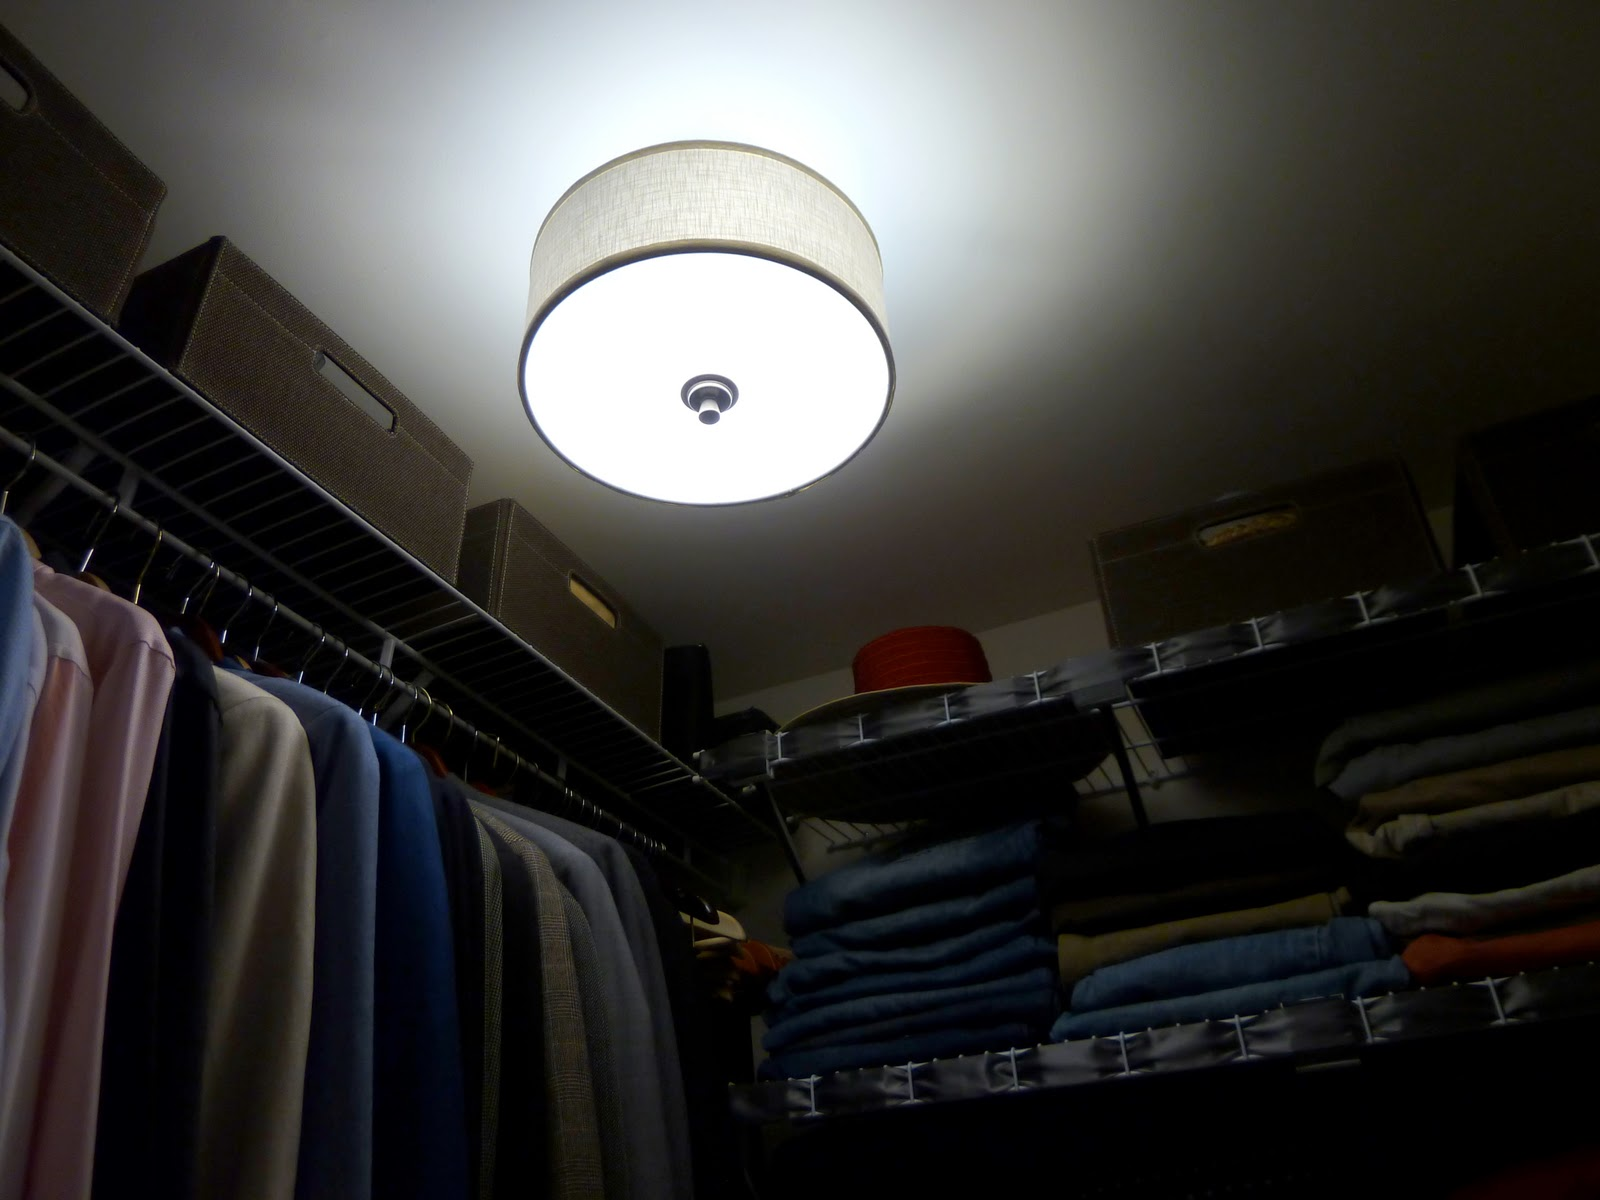 closet lighting fixtures. Closet Light Fixtures With Lighting